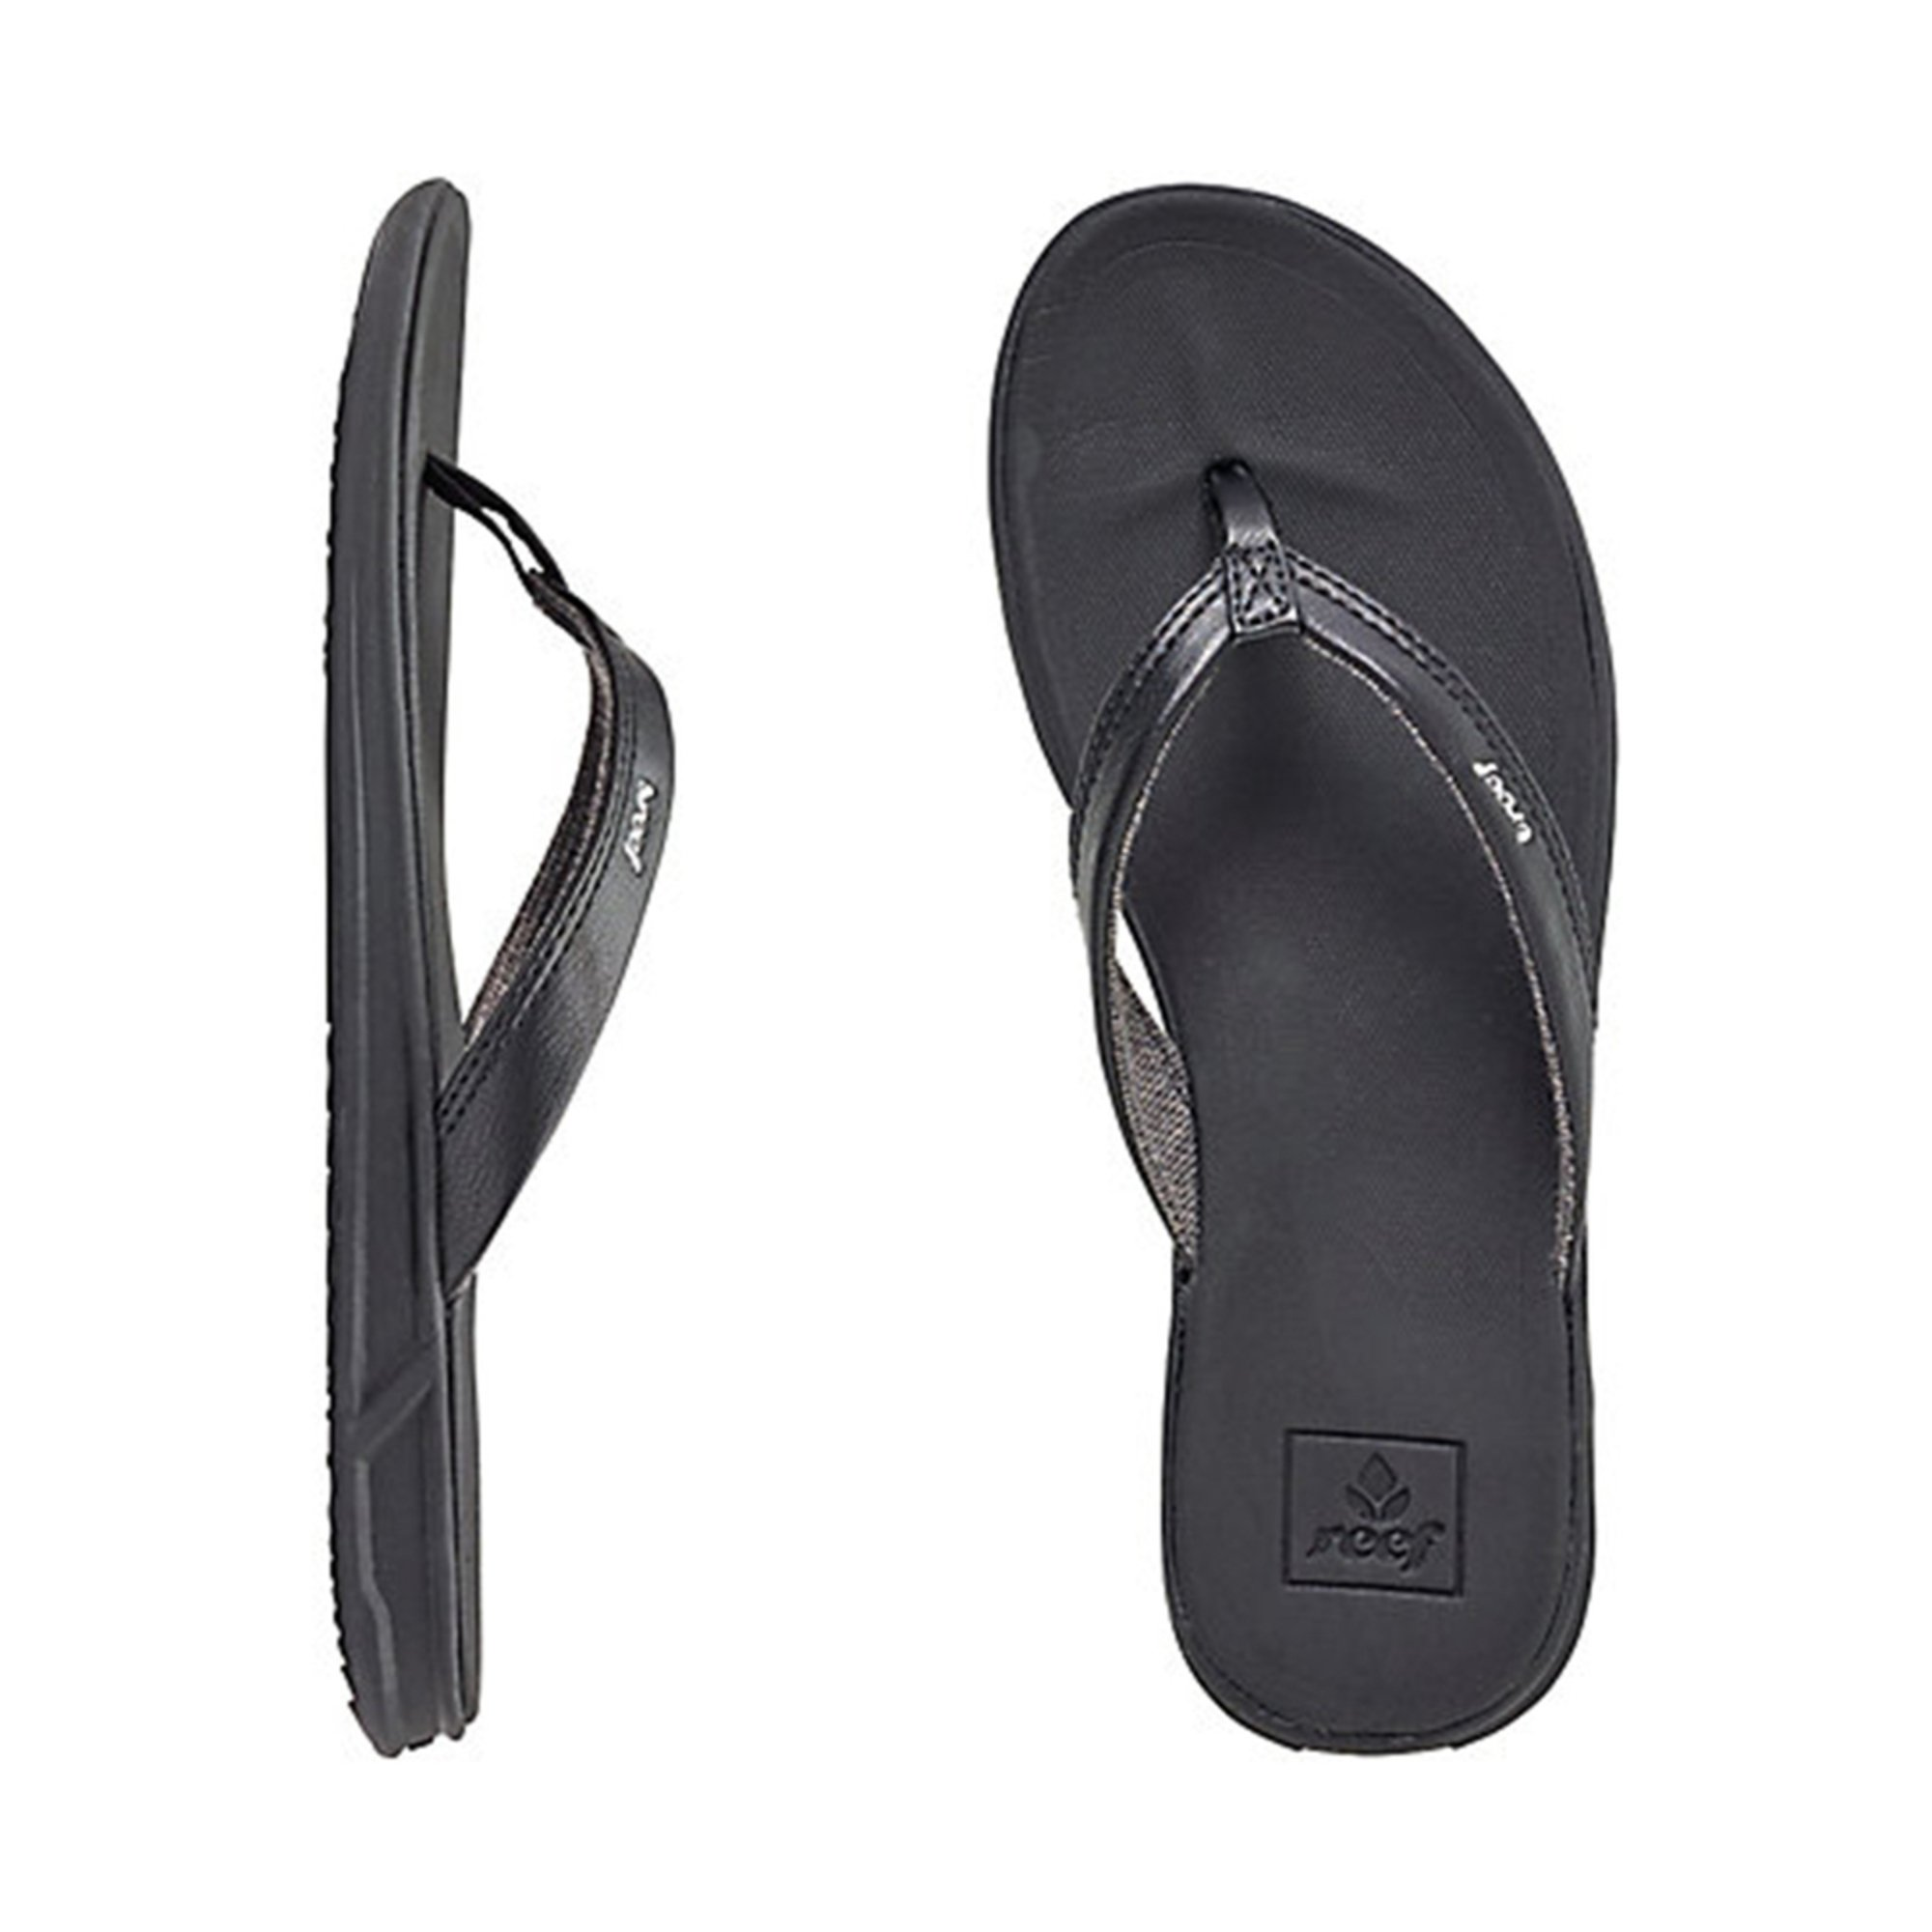 aed196cf1896 Reef. Reef Women s Rover Catch Flip Flop Sandal